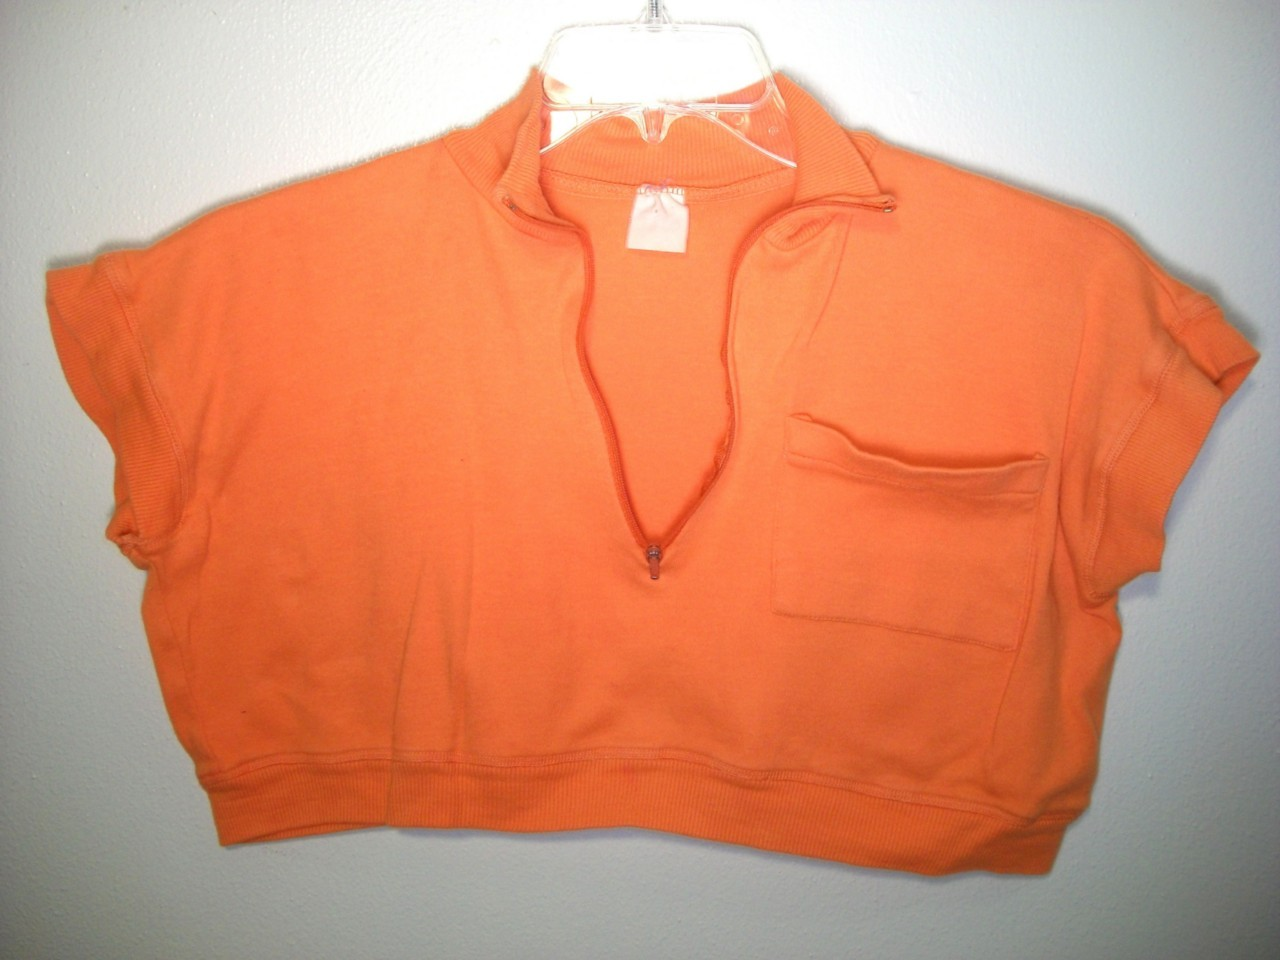 WOMEN ORANGE SPORT TOP SHIRT LARGE L XL EXTRA LARGE